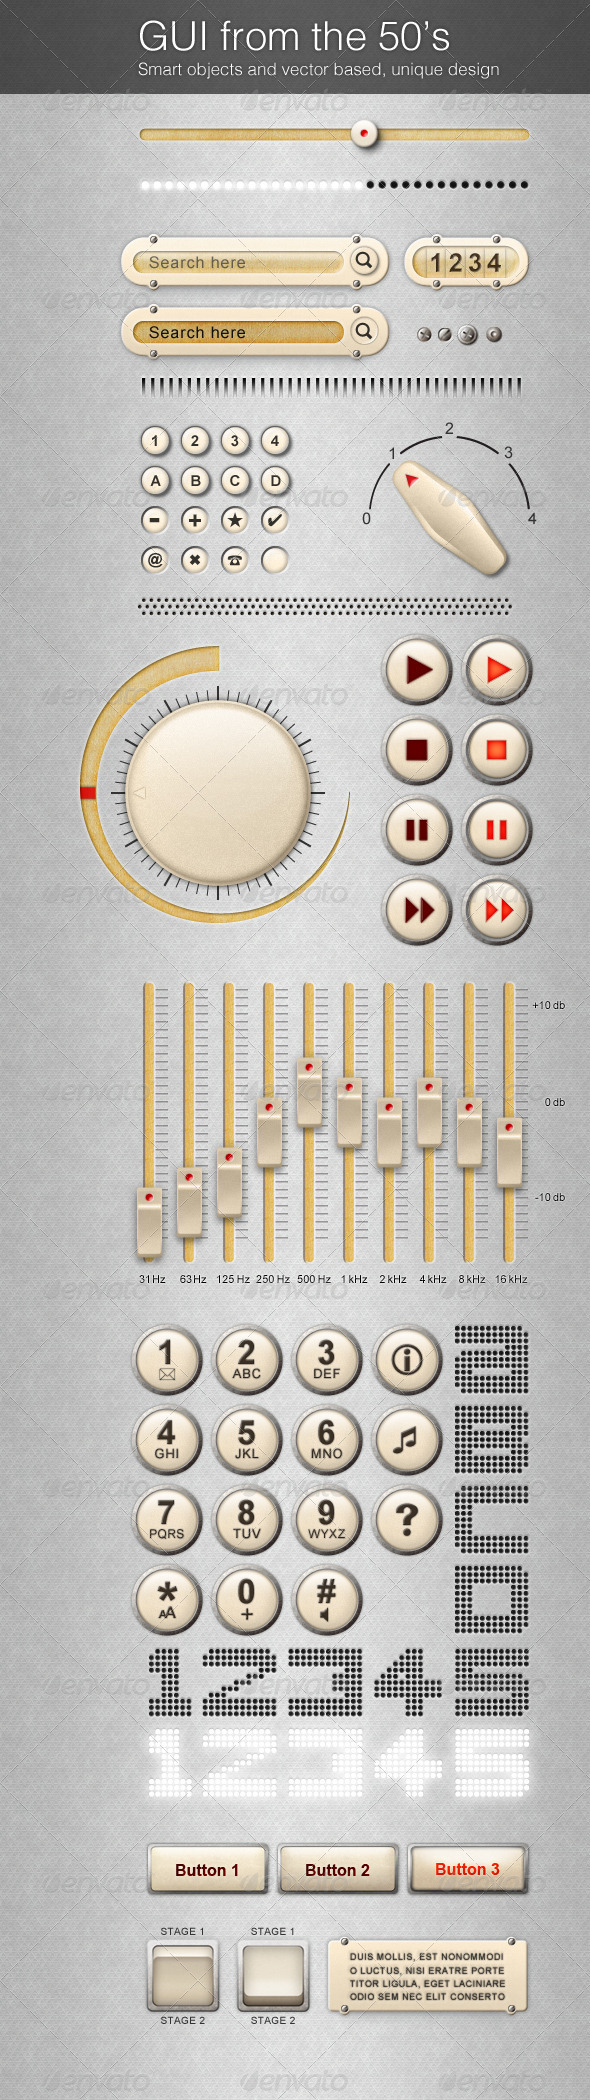 GraphicRiver 50 s GUi Graphical User Interface 762303